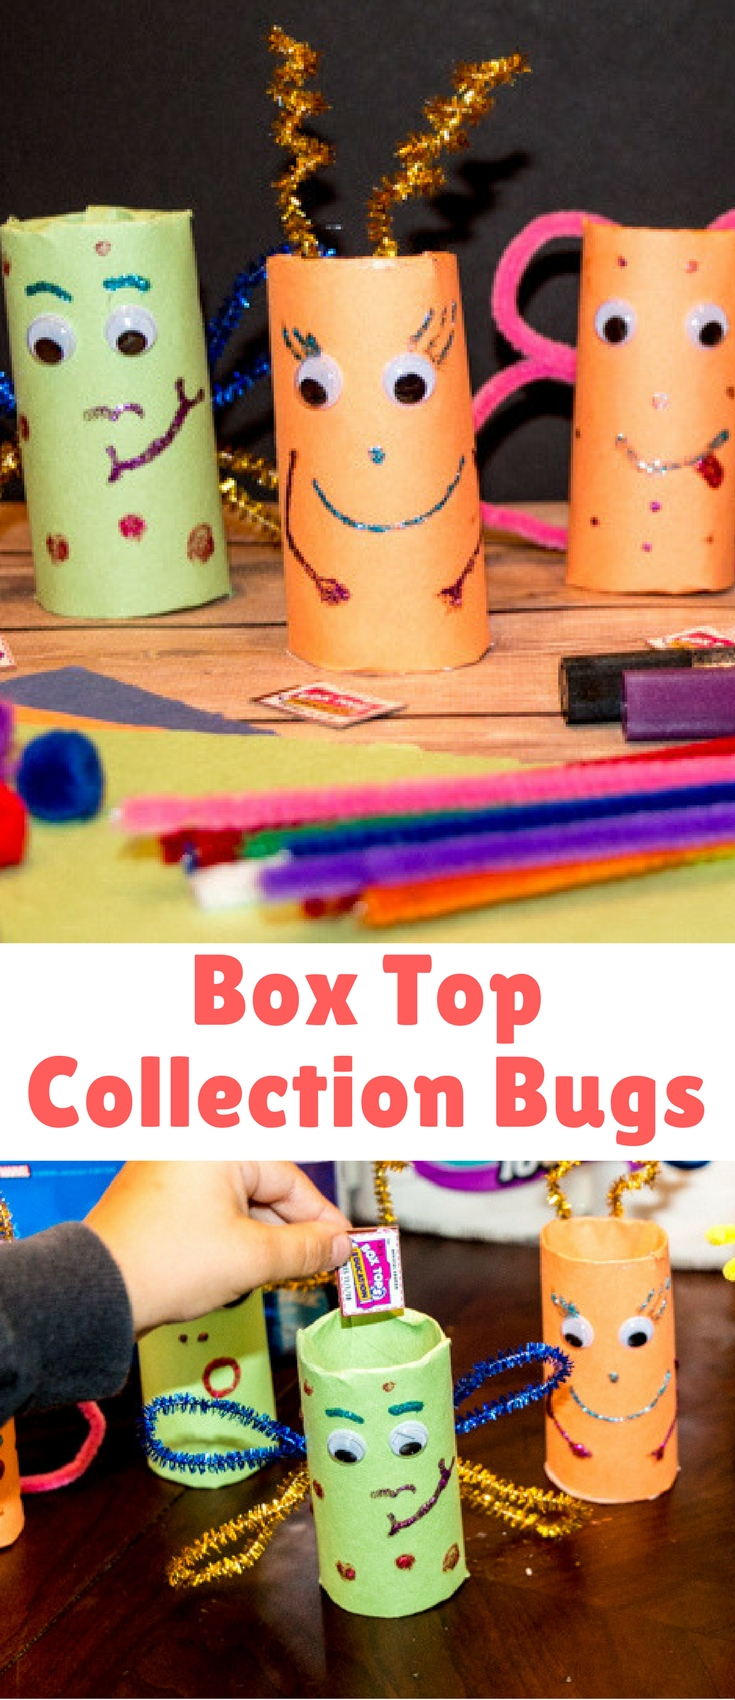 These Box Top Bugs are really easy to make – so easy I've even done them in a classroom for students to take home, making it a great class mom or PTA initiative to remind parents about the program.